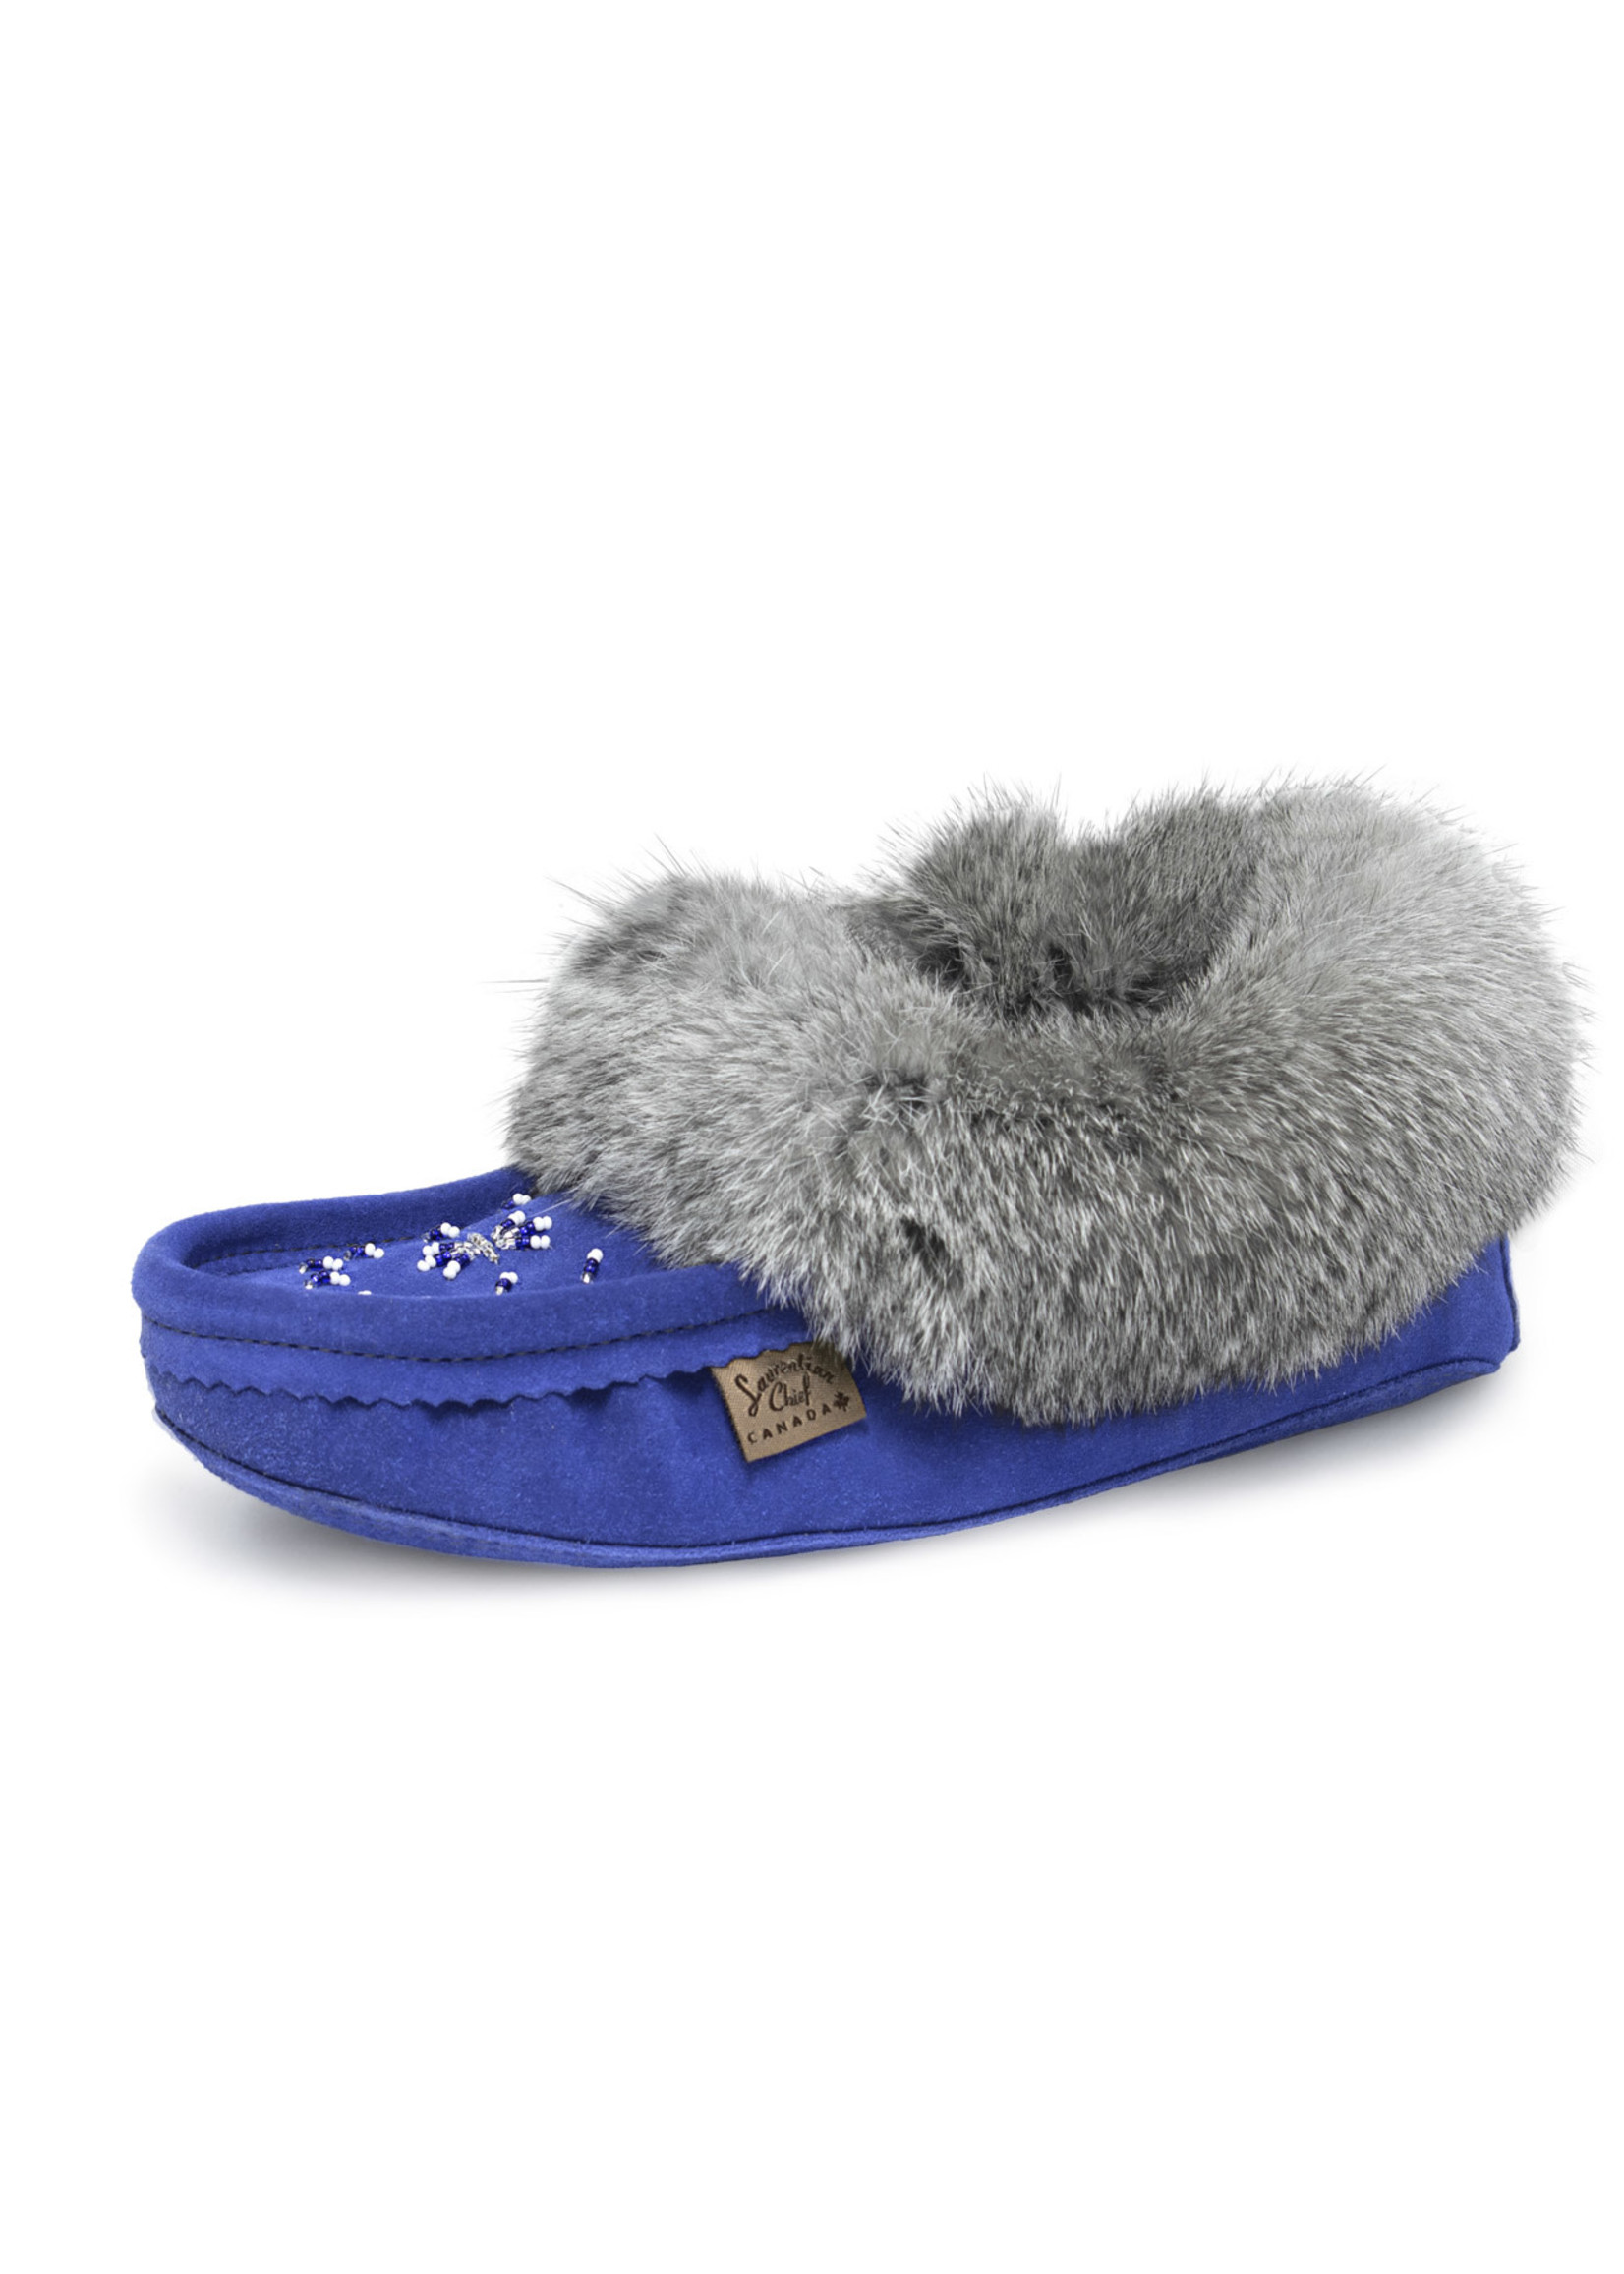 LAURENTIAN CHIEF SUEDE SLIPPER 600RBL